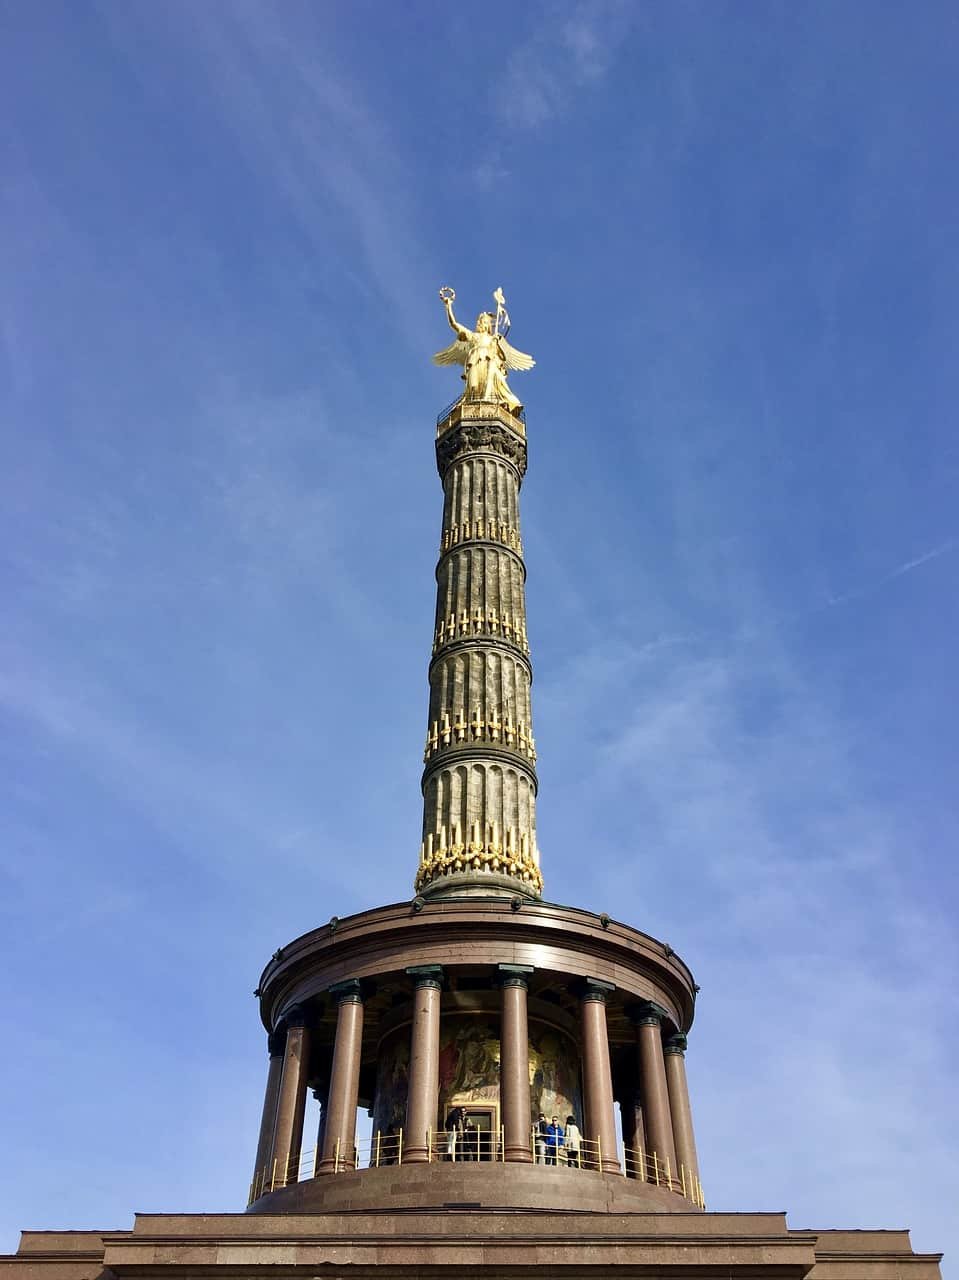 Visitors can enjoy fantastic views from atop the Victory Column in Berlin.